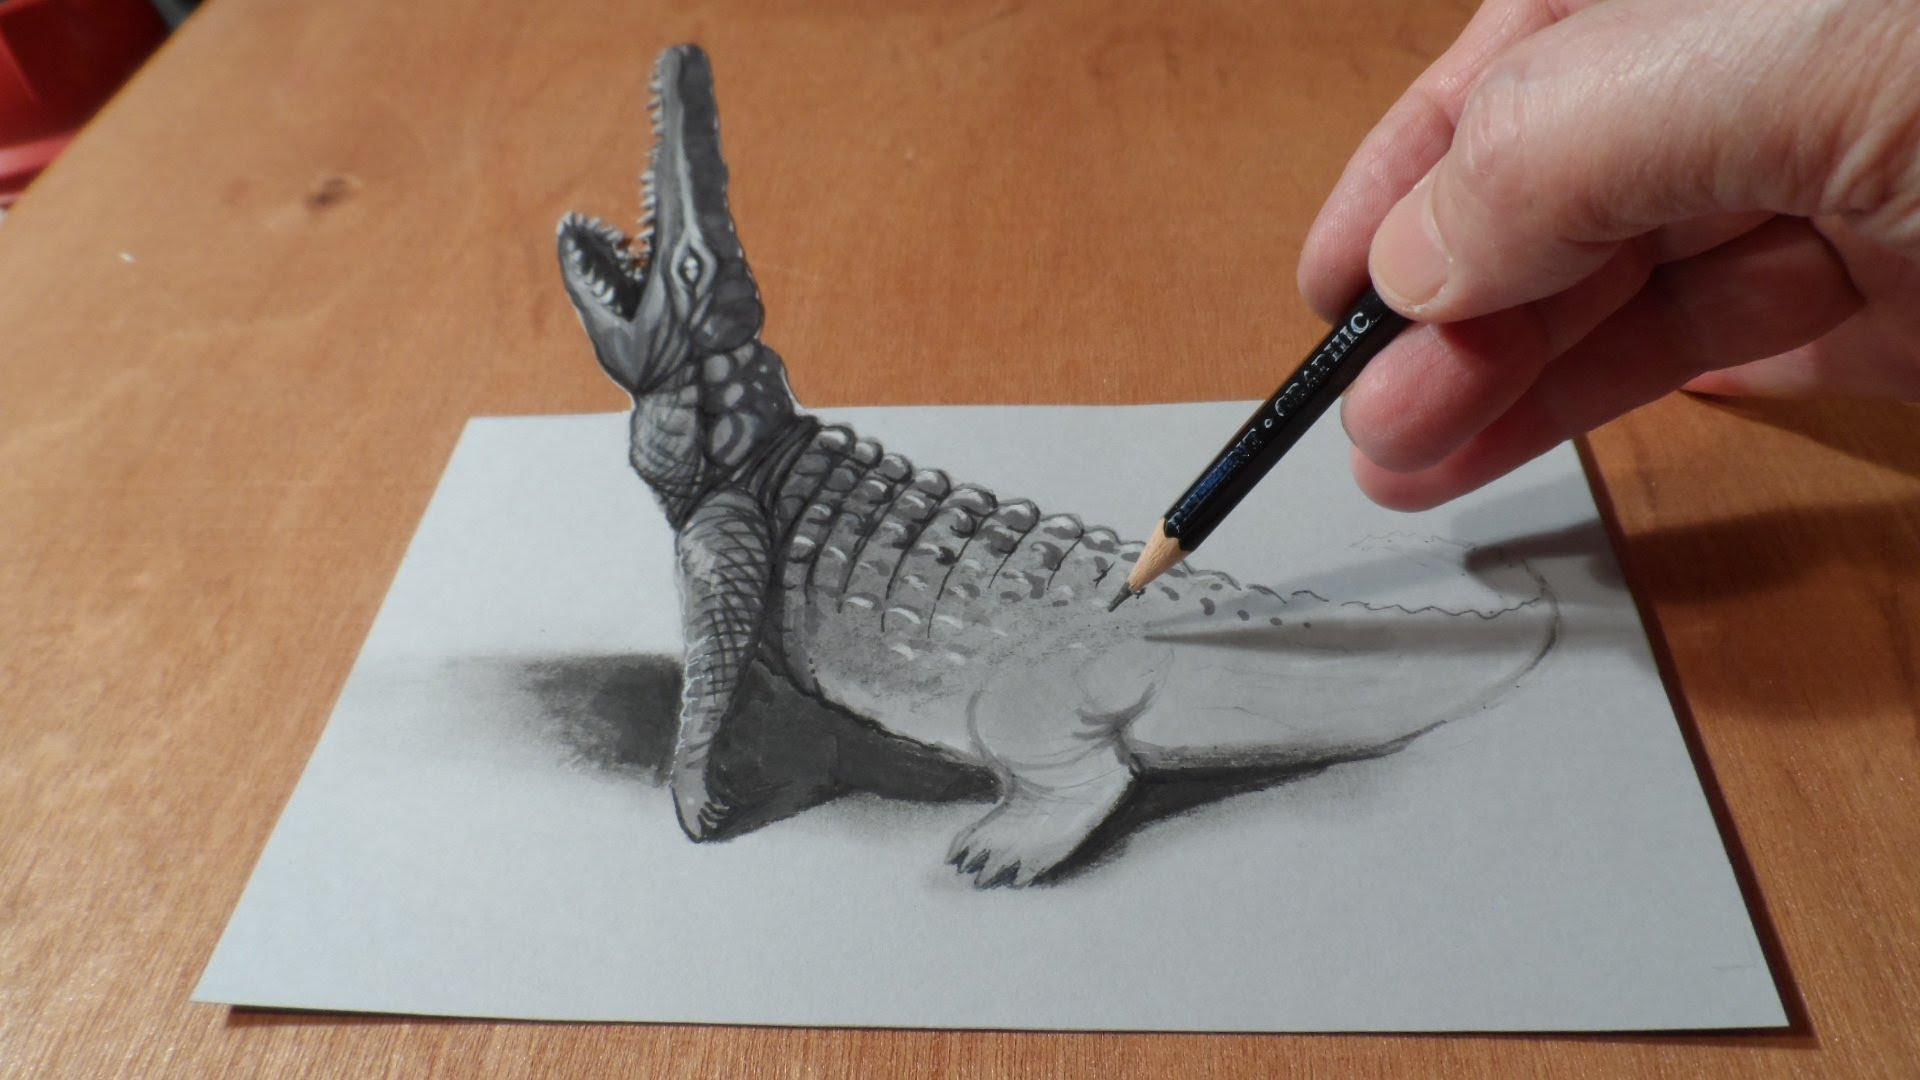 Drawn 3d 3D Optical Drawing Trick Crocodile